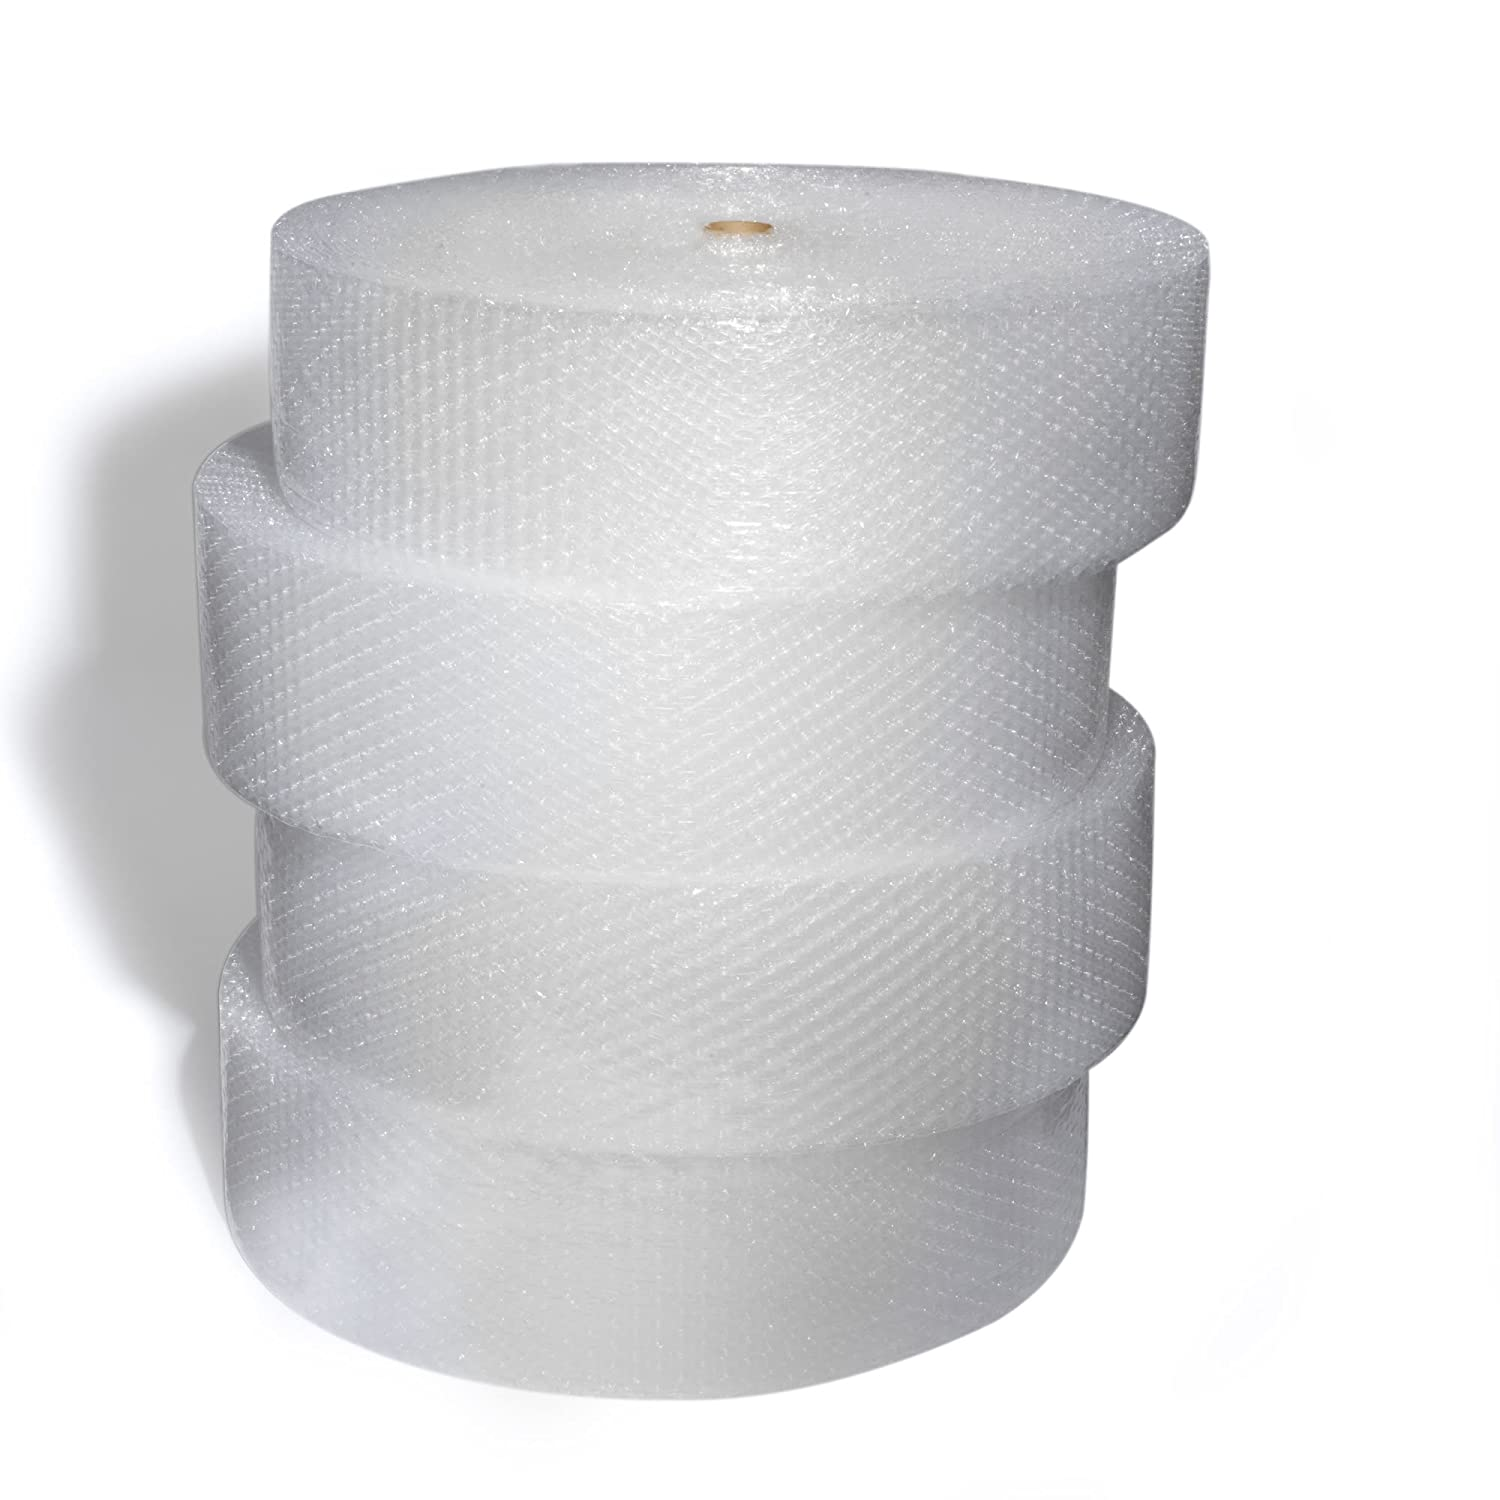 "mmpack1/2"" 125ft x 24"" Big Nylon Bubble Cushioning Wrap, Perforated Every 12"